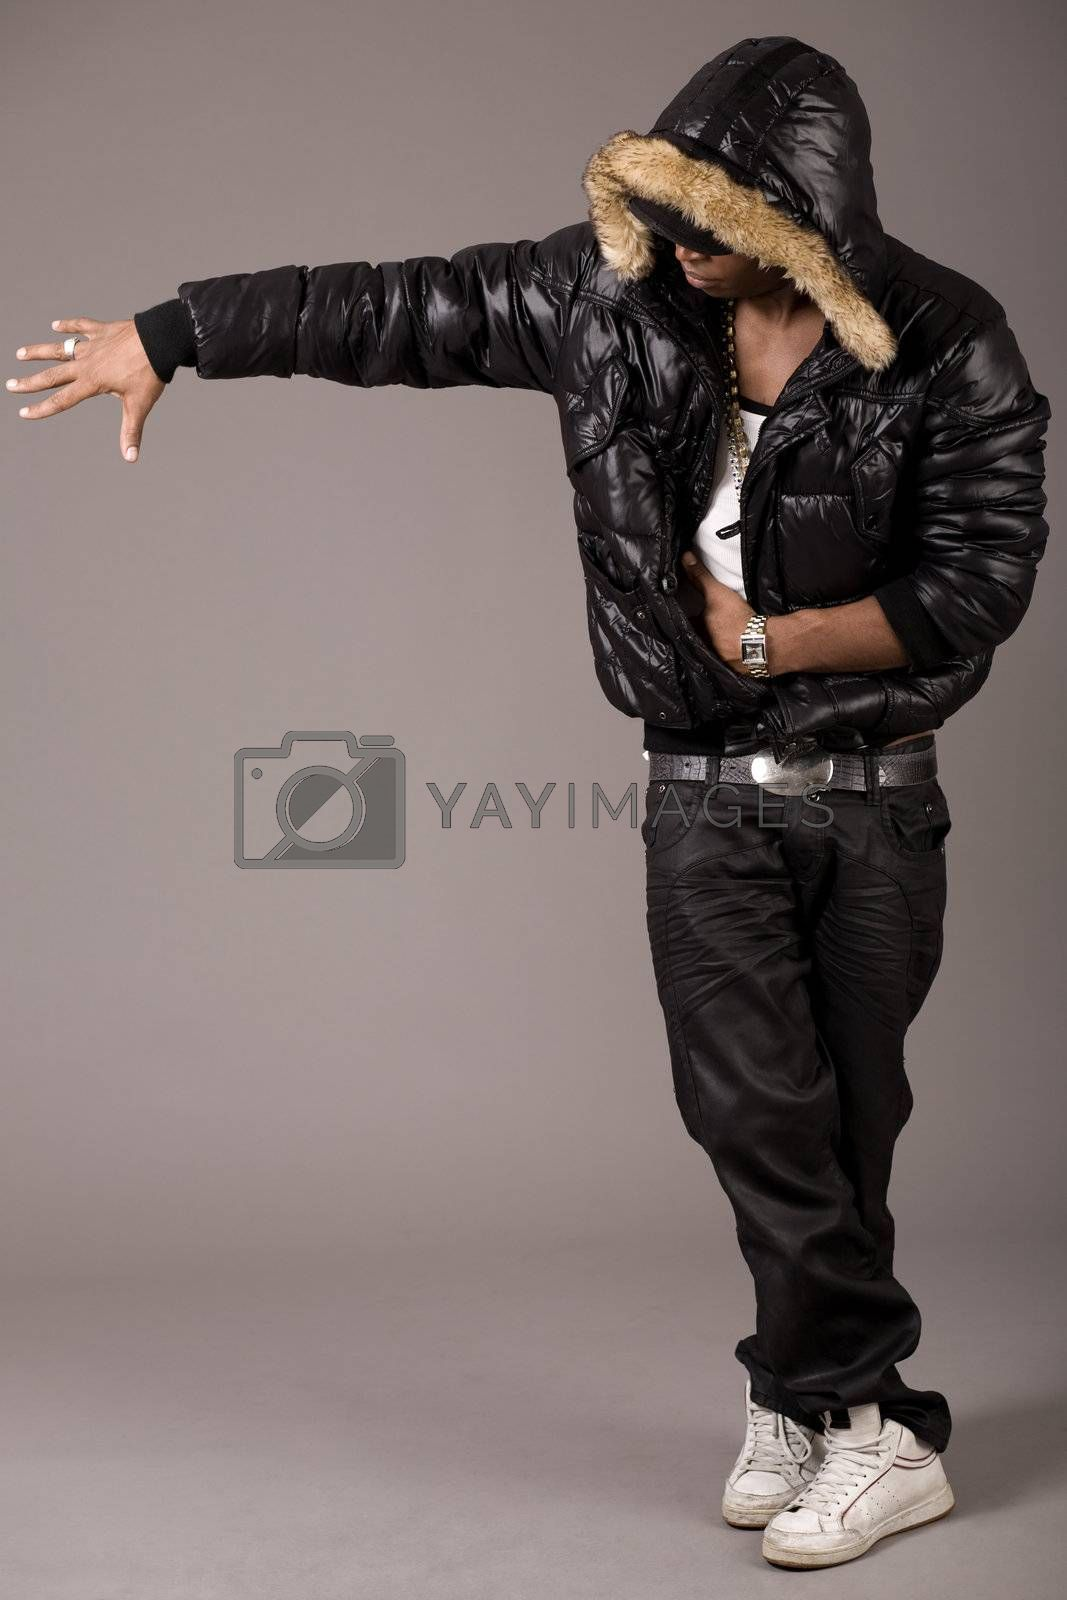 Black african rap performer on grey background